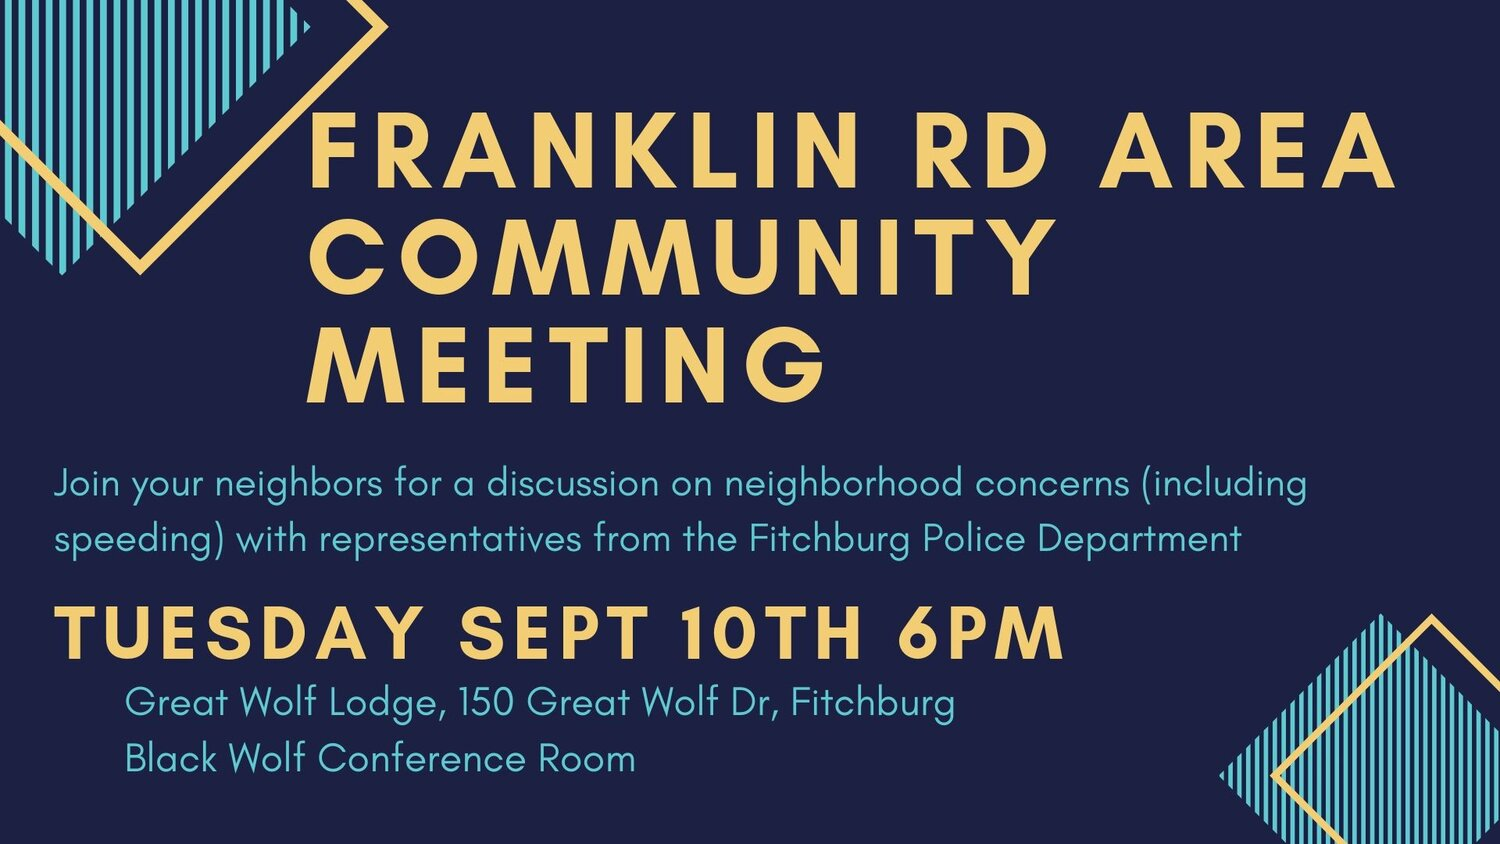 Franklin Rd Area Community Meeting.jpg